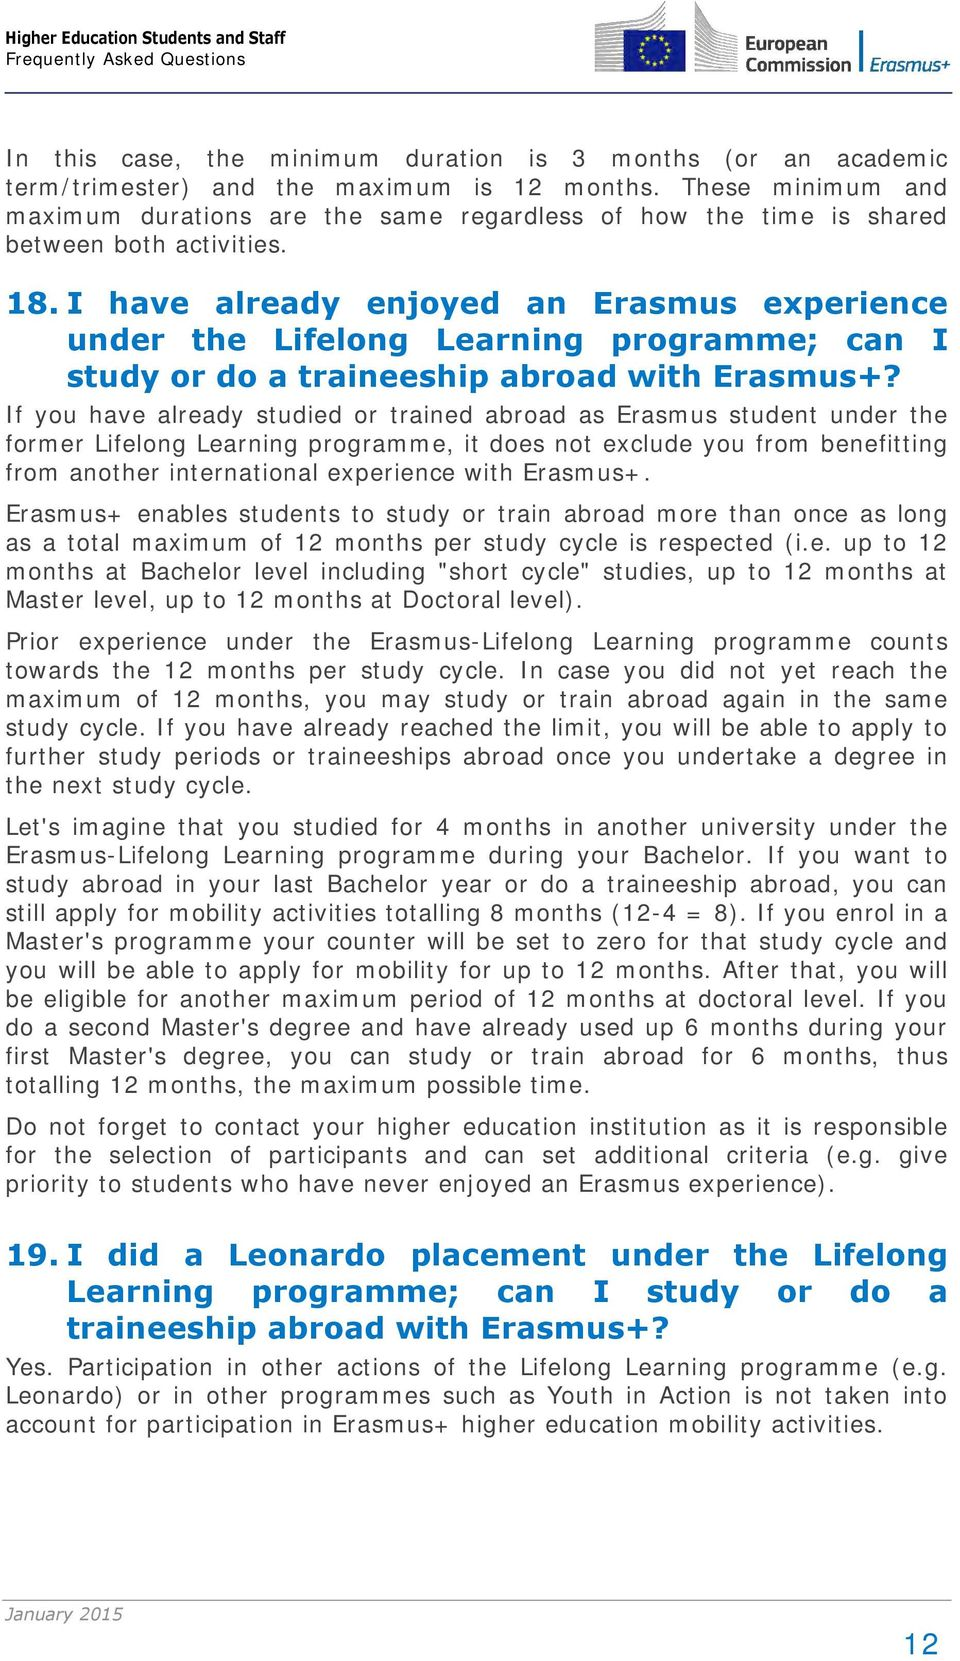 I have already enjoyed an Erasmus experience under the Lifelong Learning programme; can I study or do a traineeship abroad with Erasmus+?